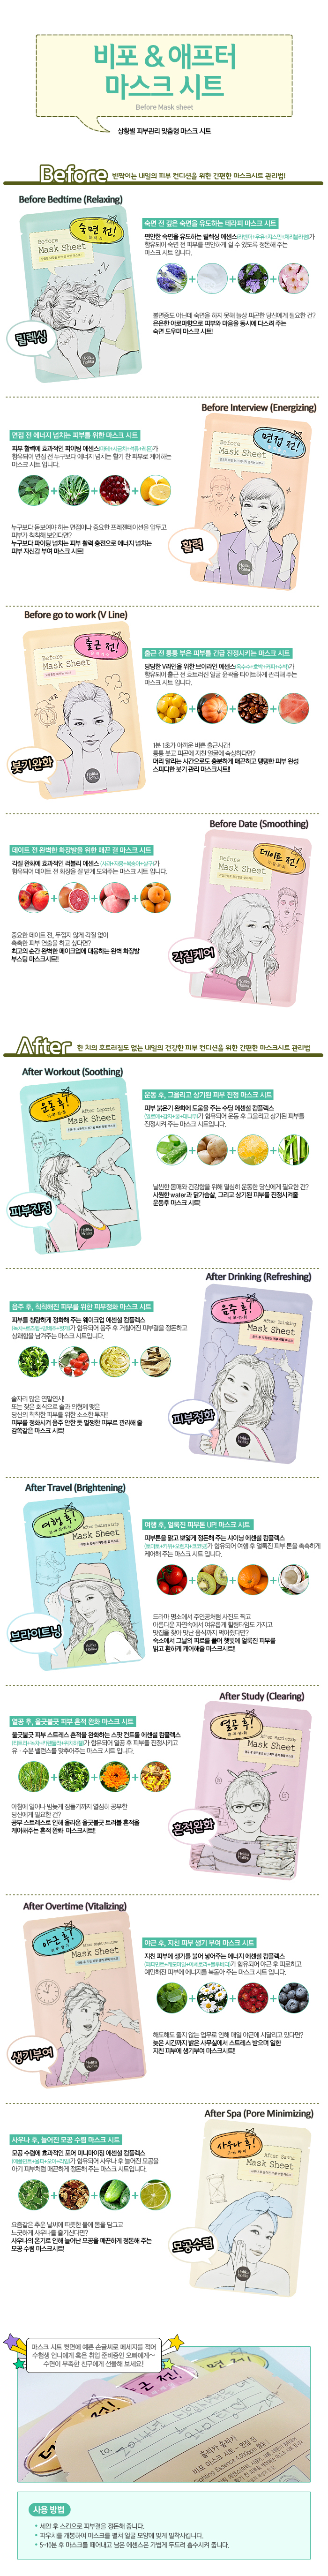 holika-holika-before-after-mask-desc.jpg